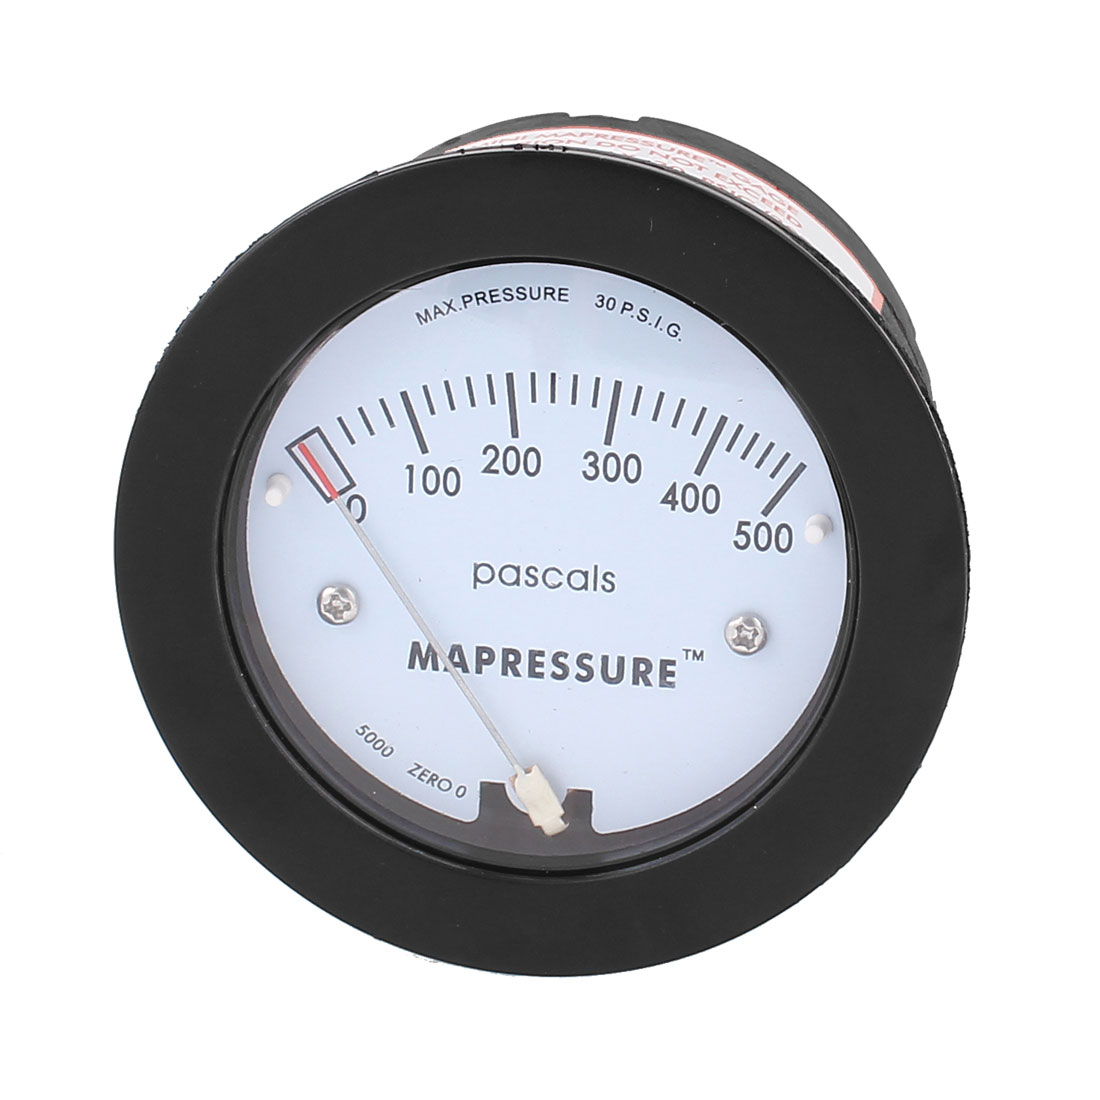 Series 5000 0-500Pa 30 PSIG Differential Pressure Gauge Meter